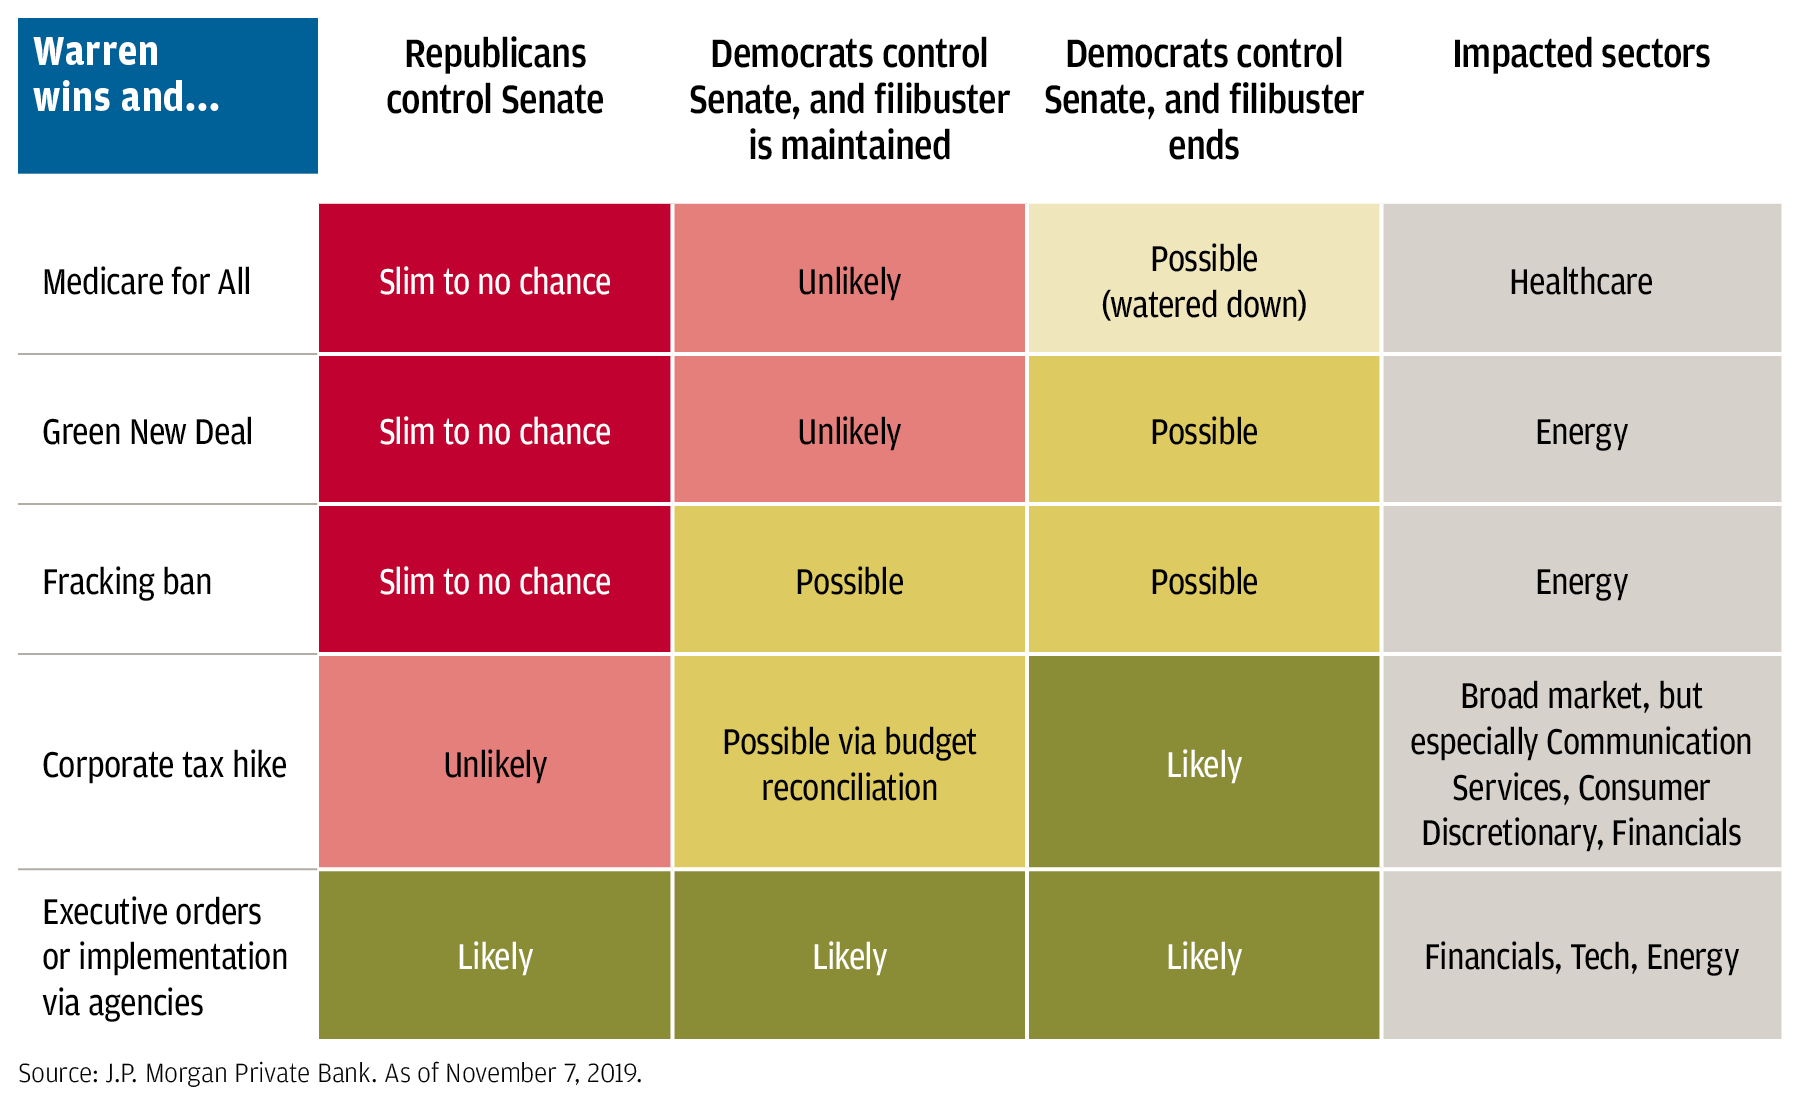 The chart shows the policy proposals from Senator Warren that are most likely to be enacted in the event she wins the presidency, along with the impacted sectors.